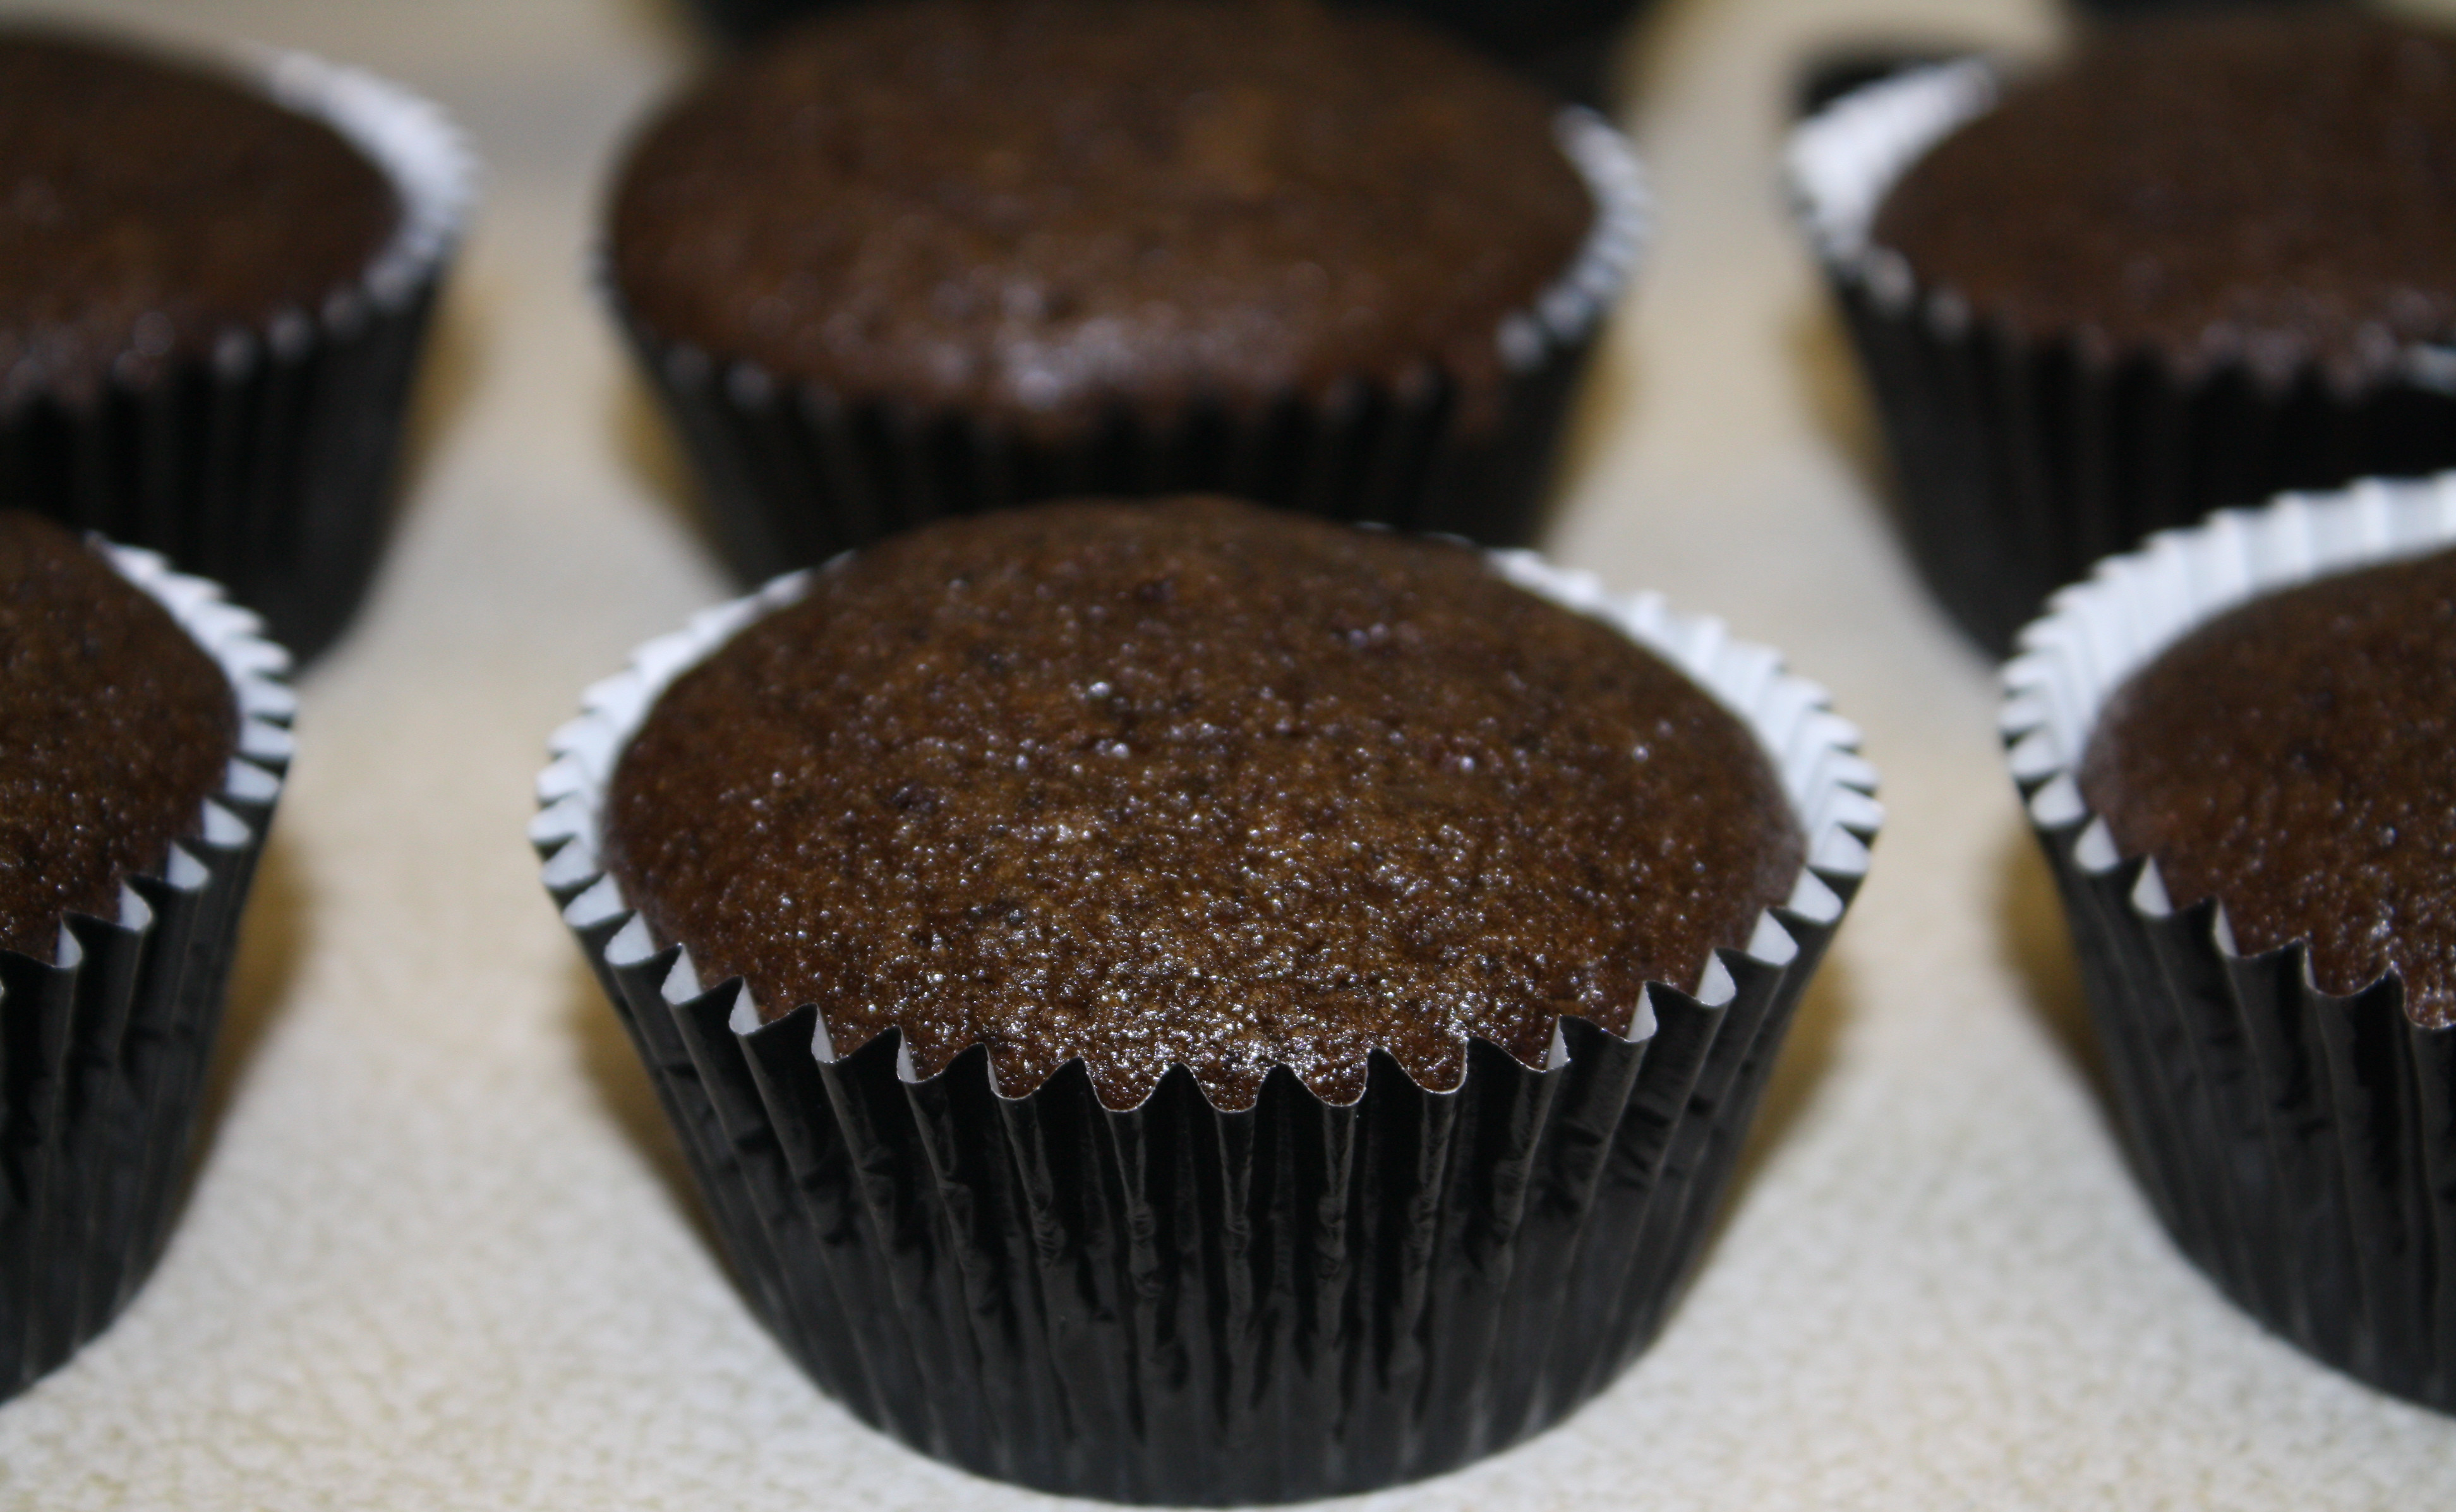 Homemade Chocolate Cupcakes  Incredibly Easy & Moist Chocolate Cupcakes – The Quotable